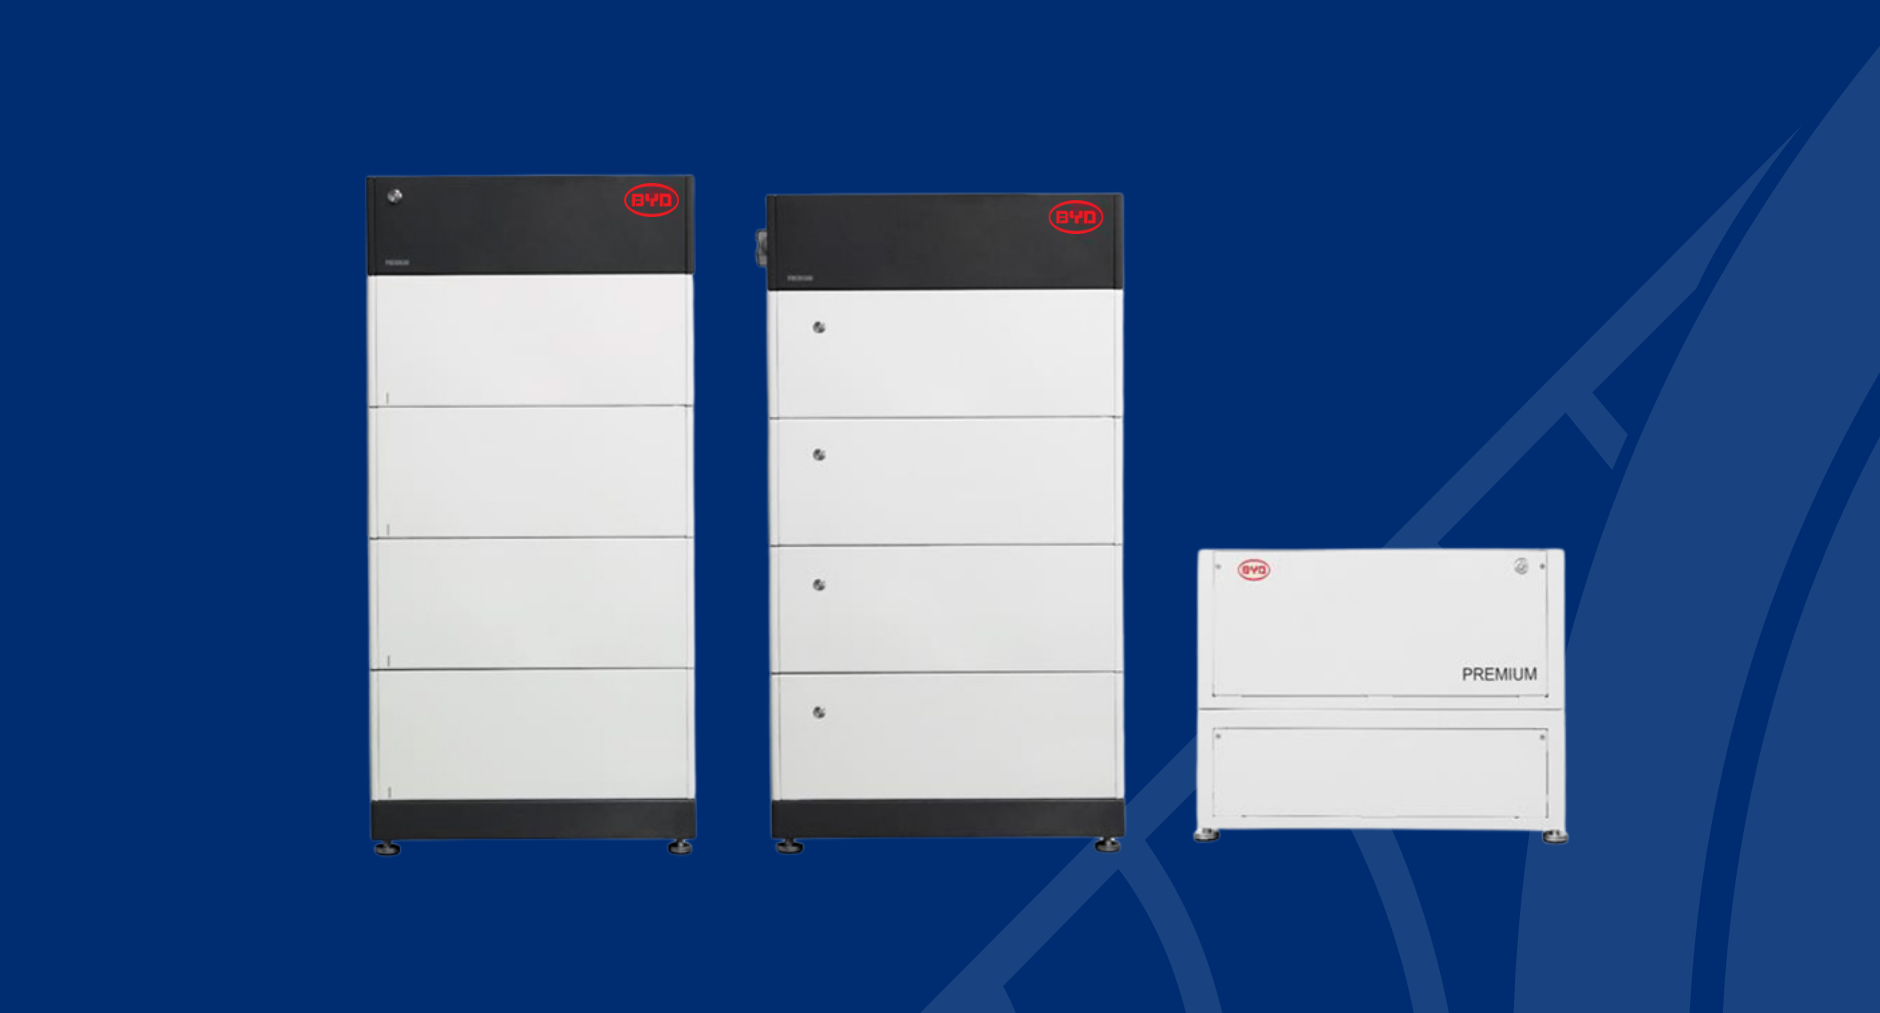 BYD batteries compatible with Fronius Gen 24 solar inverters